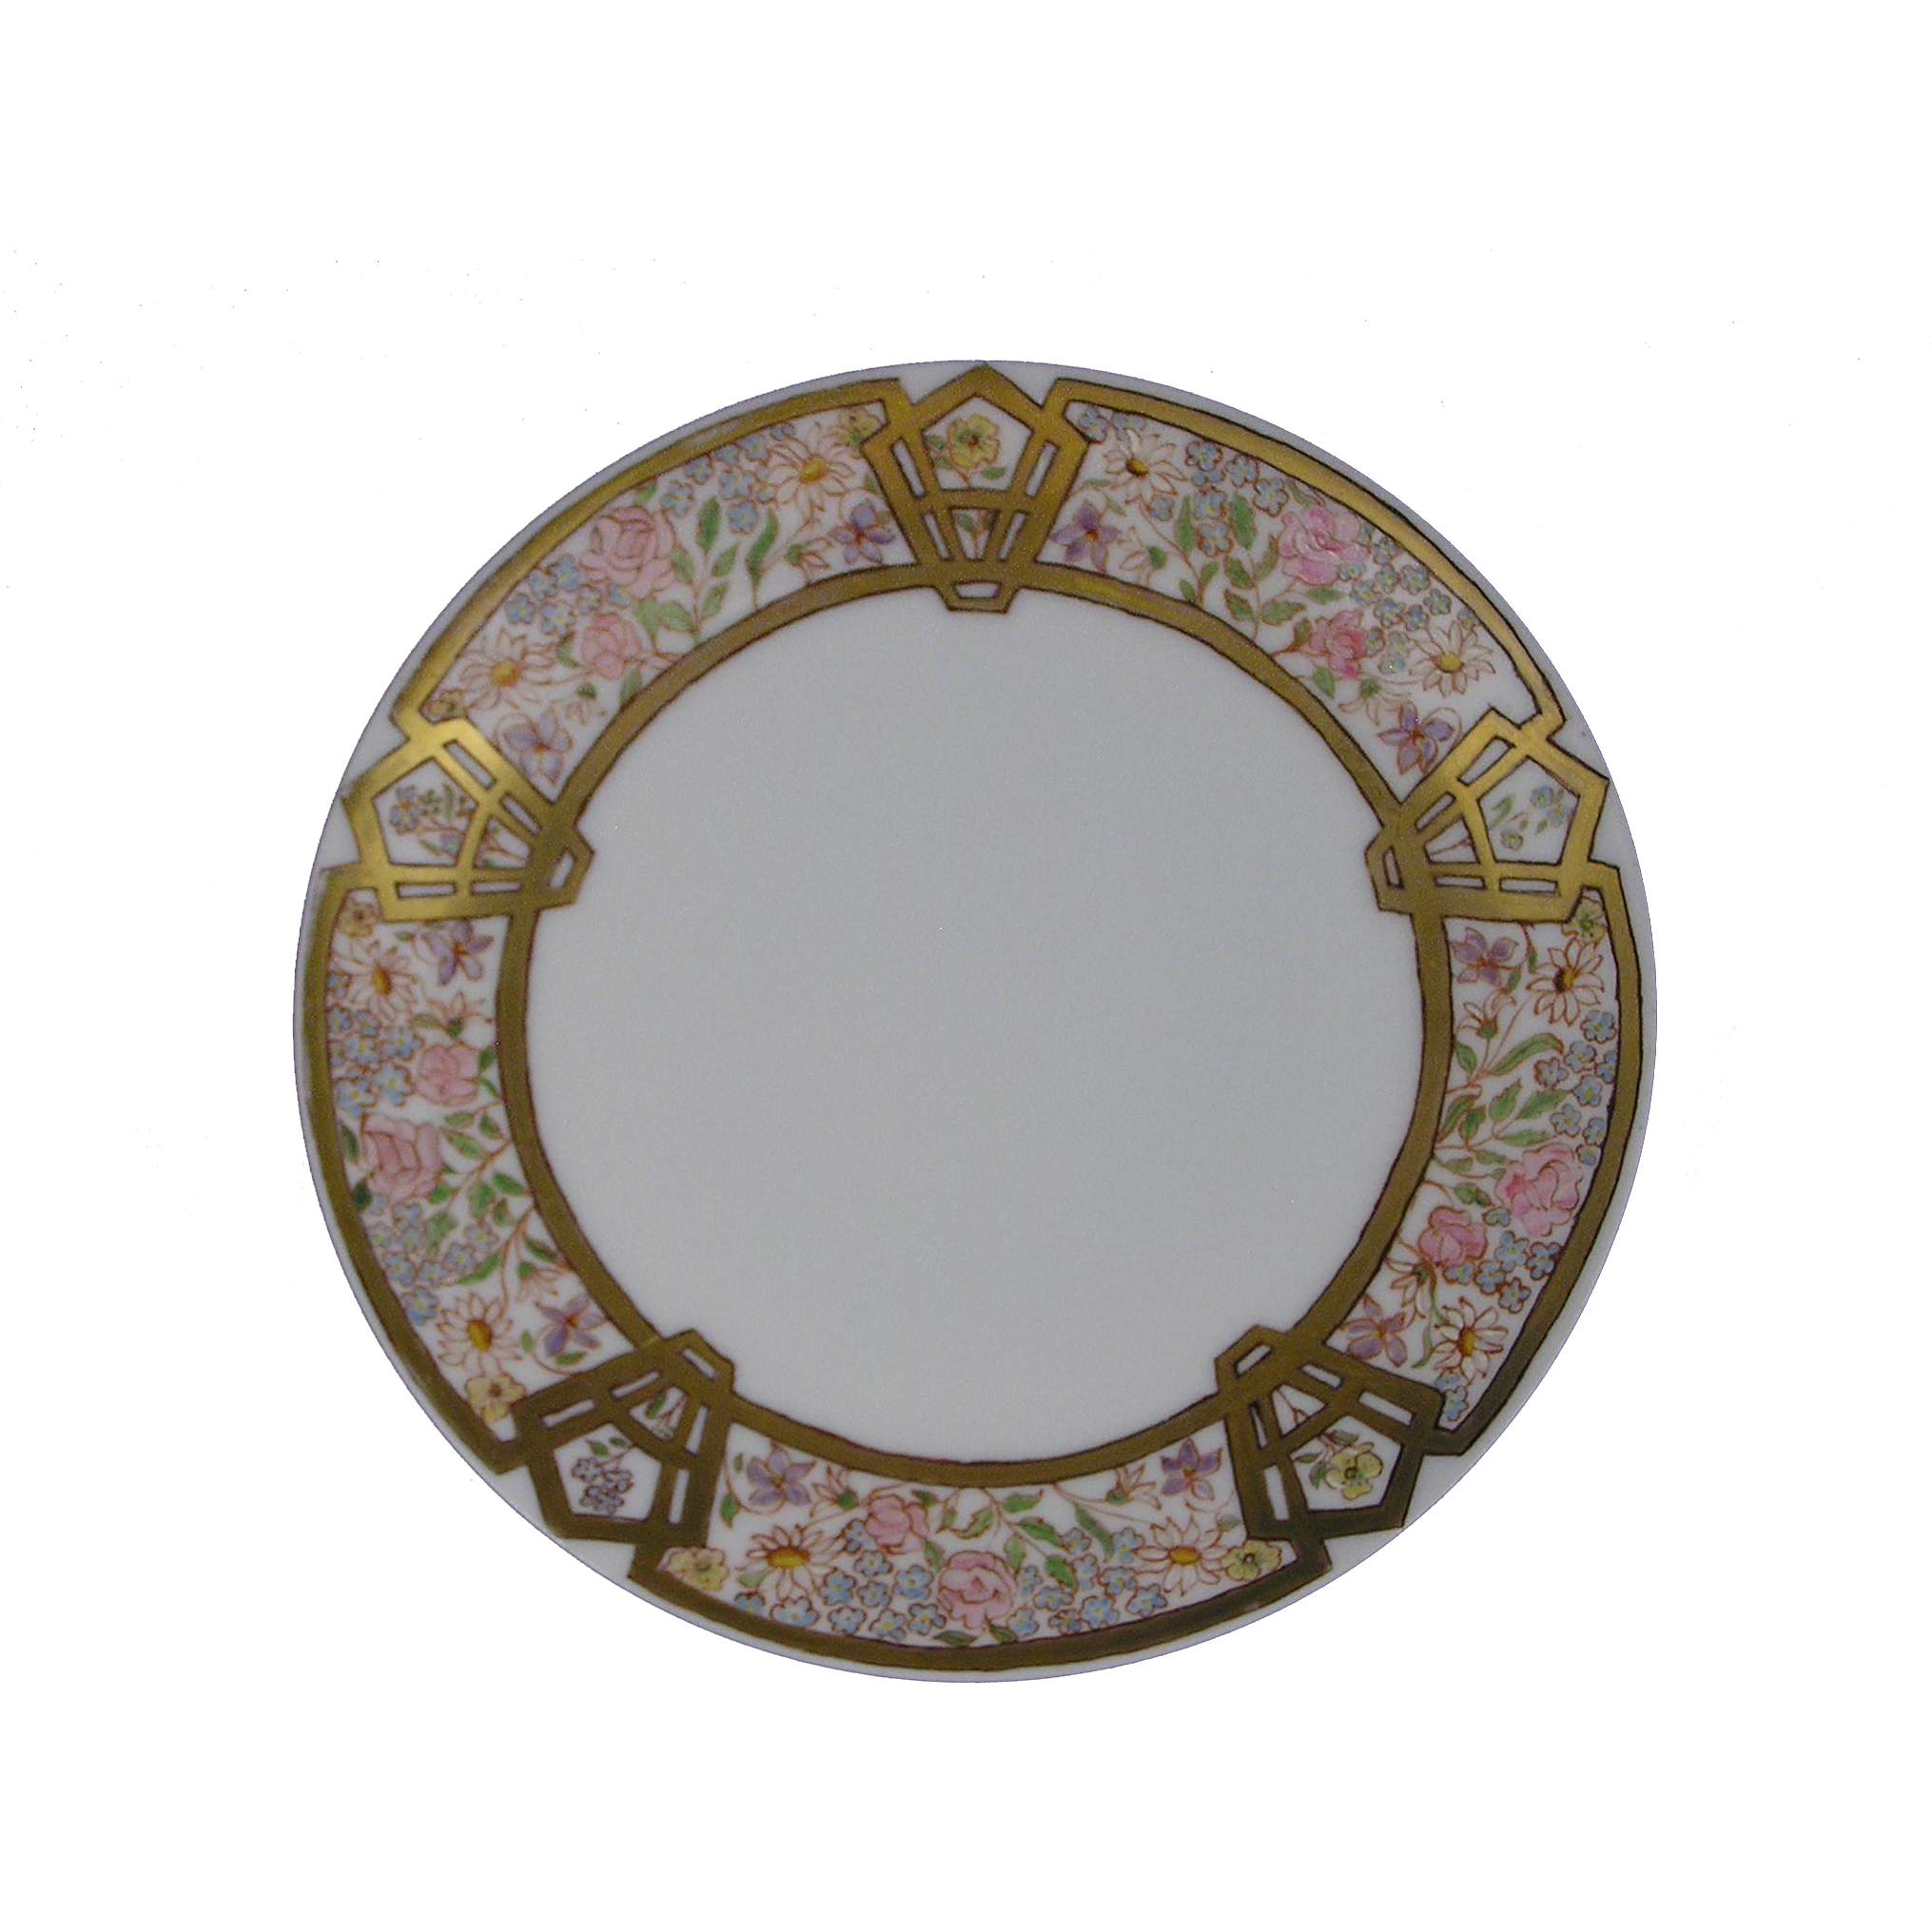 Thomas Bavaria Enameled Floral Design Plate (c.1920-1940)